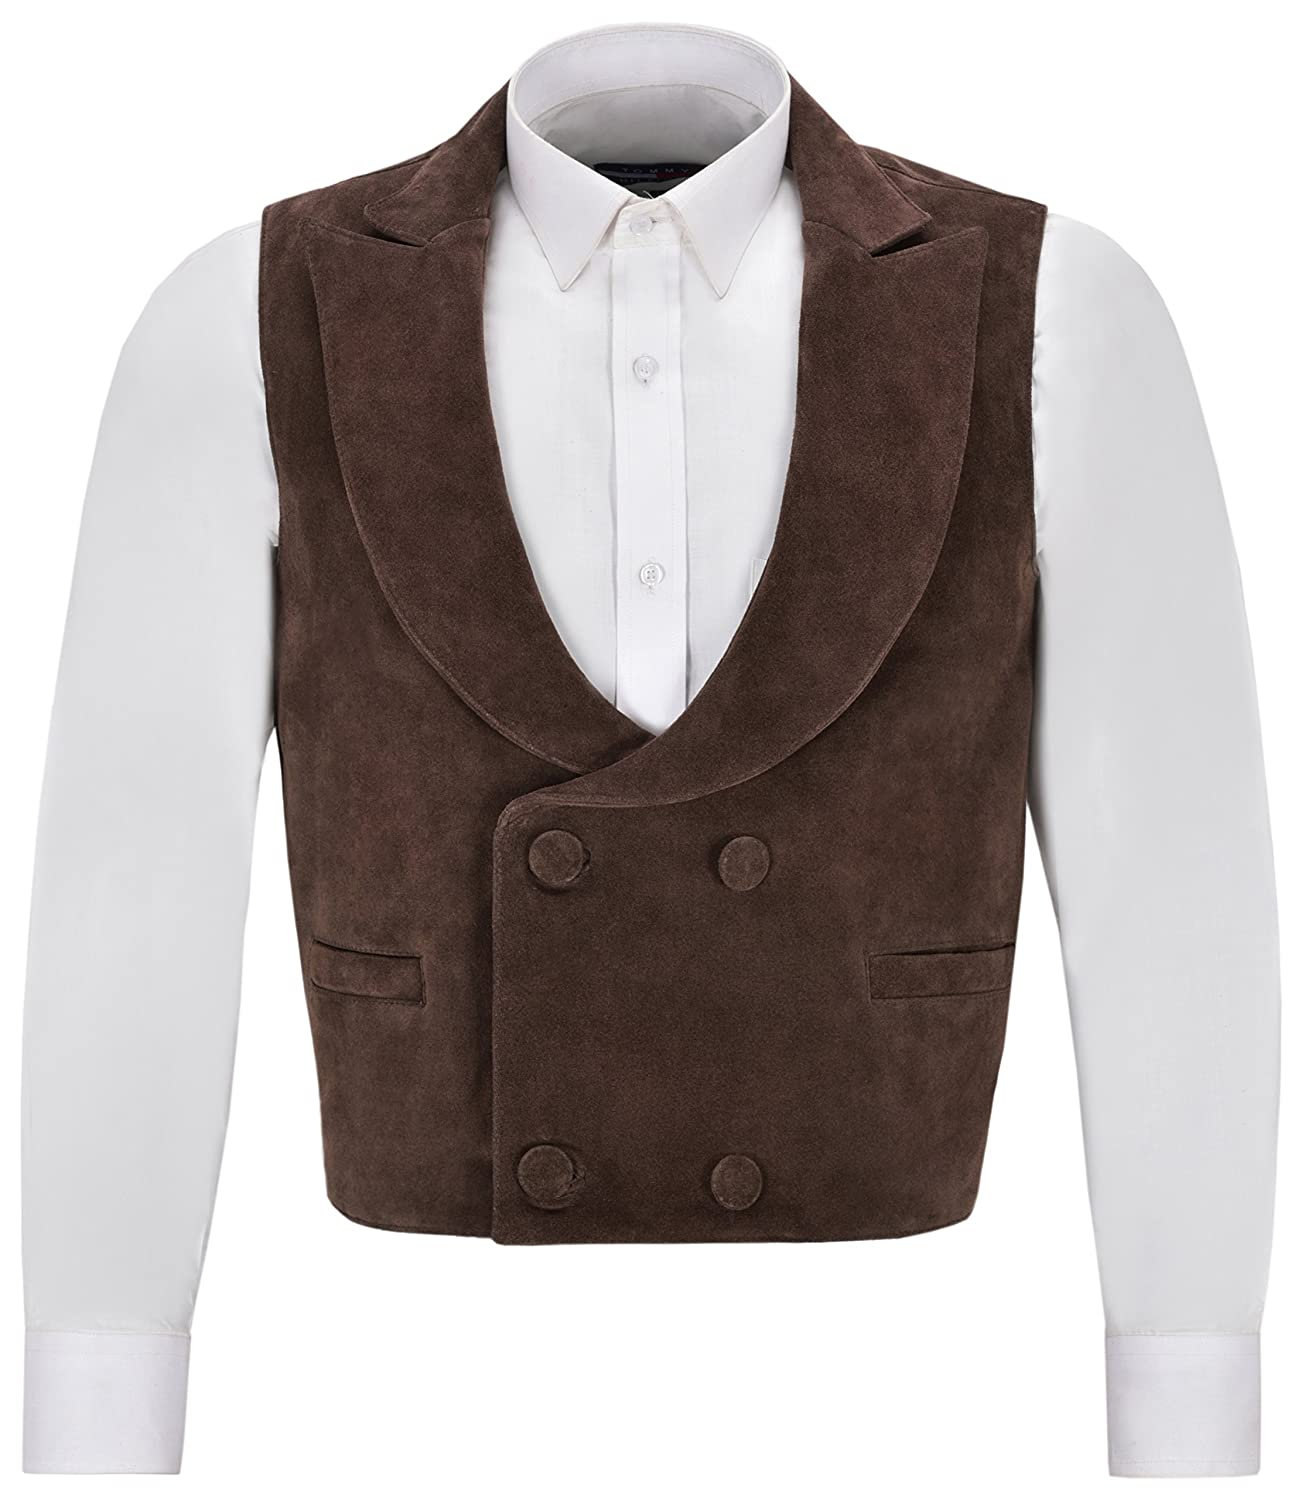 Men's Vintage Vests, Sweater Vests Edwardian Mens Suede Leather Waistcoat Brown | Double Breasted Real NAPA 3281 £55.00 AT vintagedancer.com